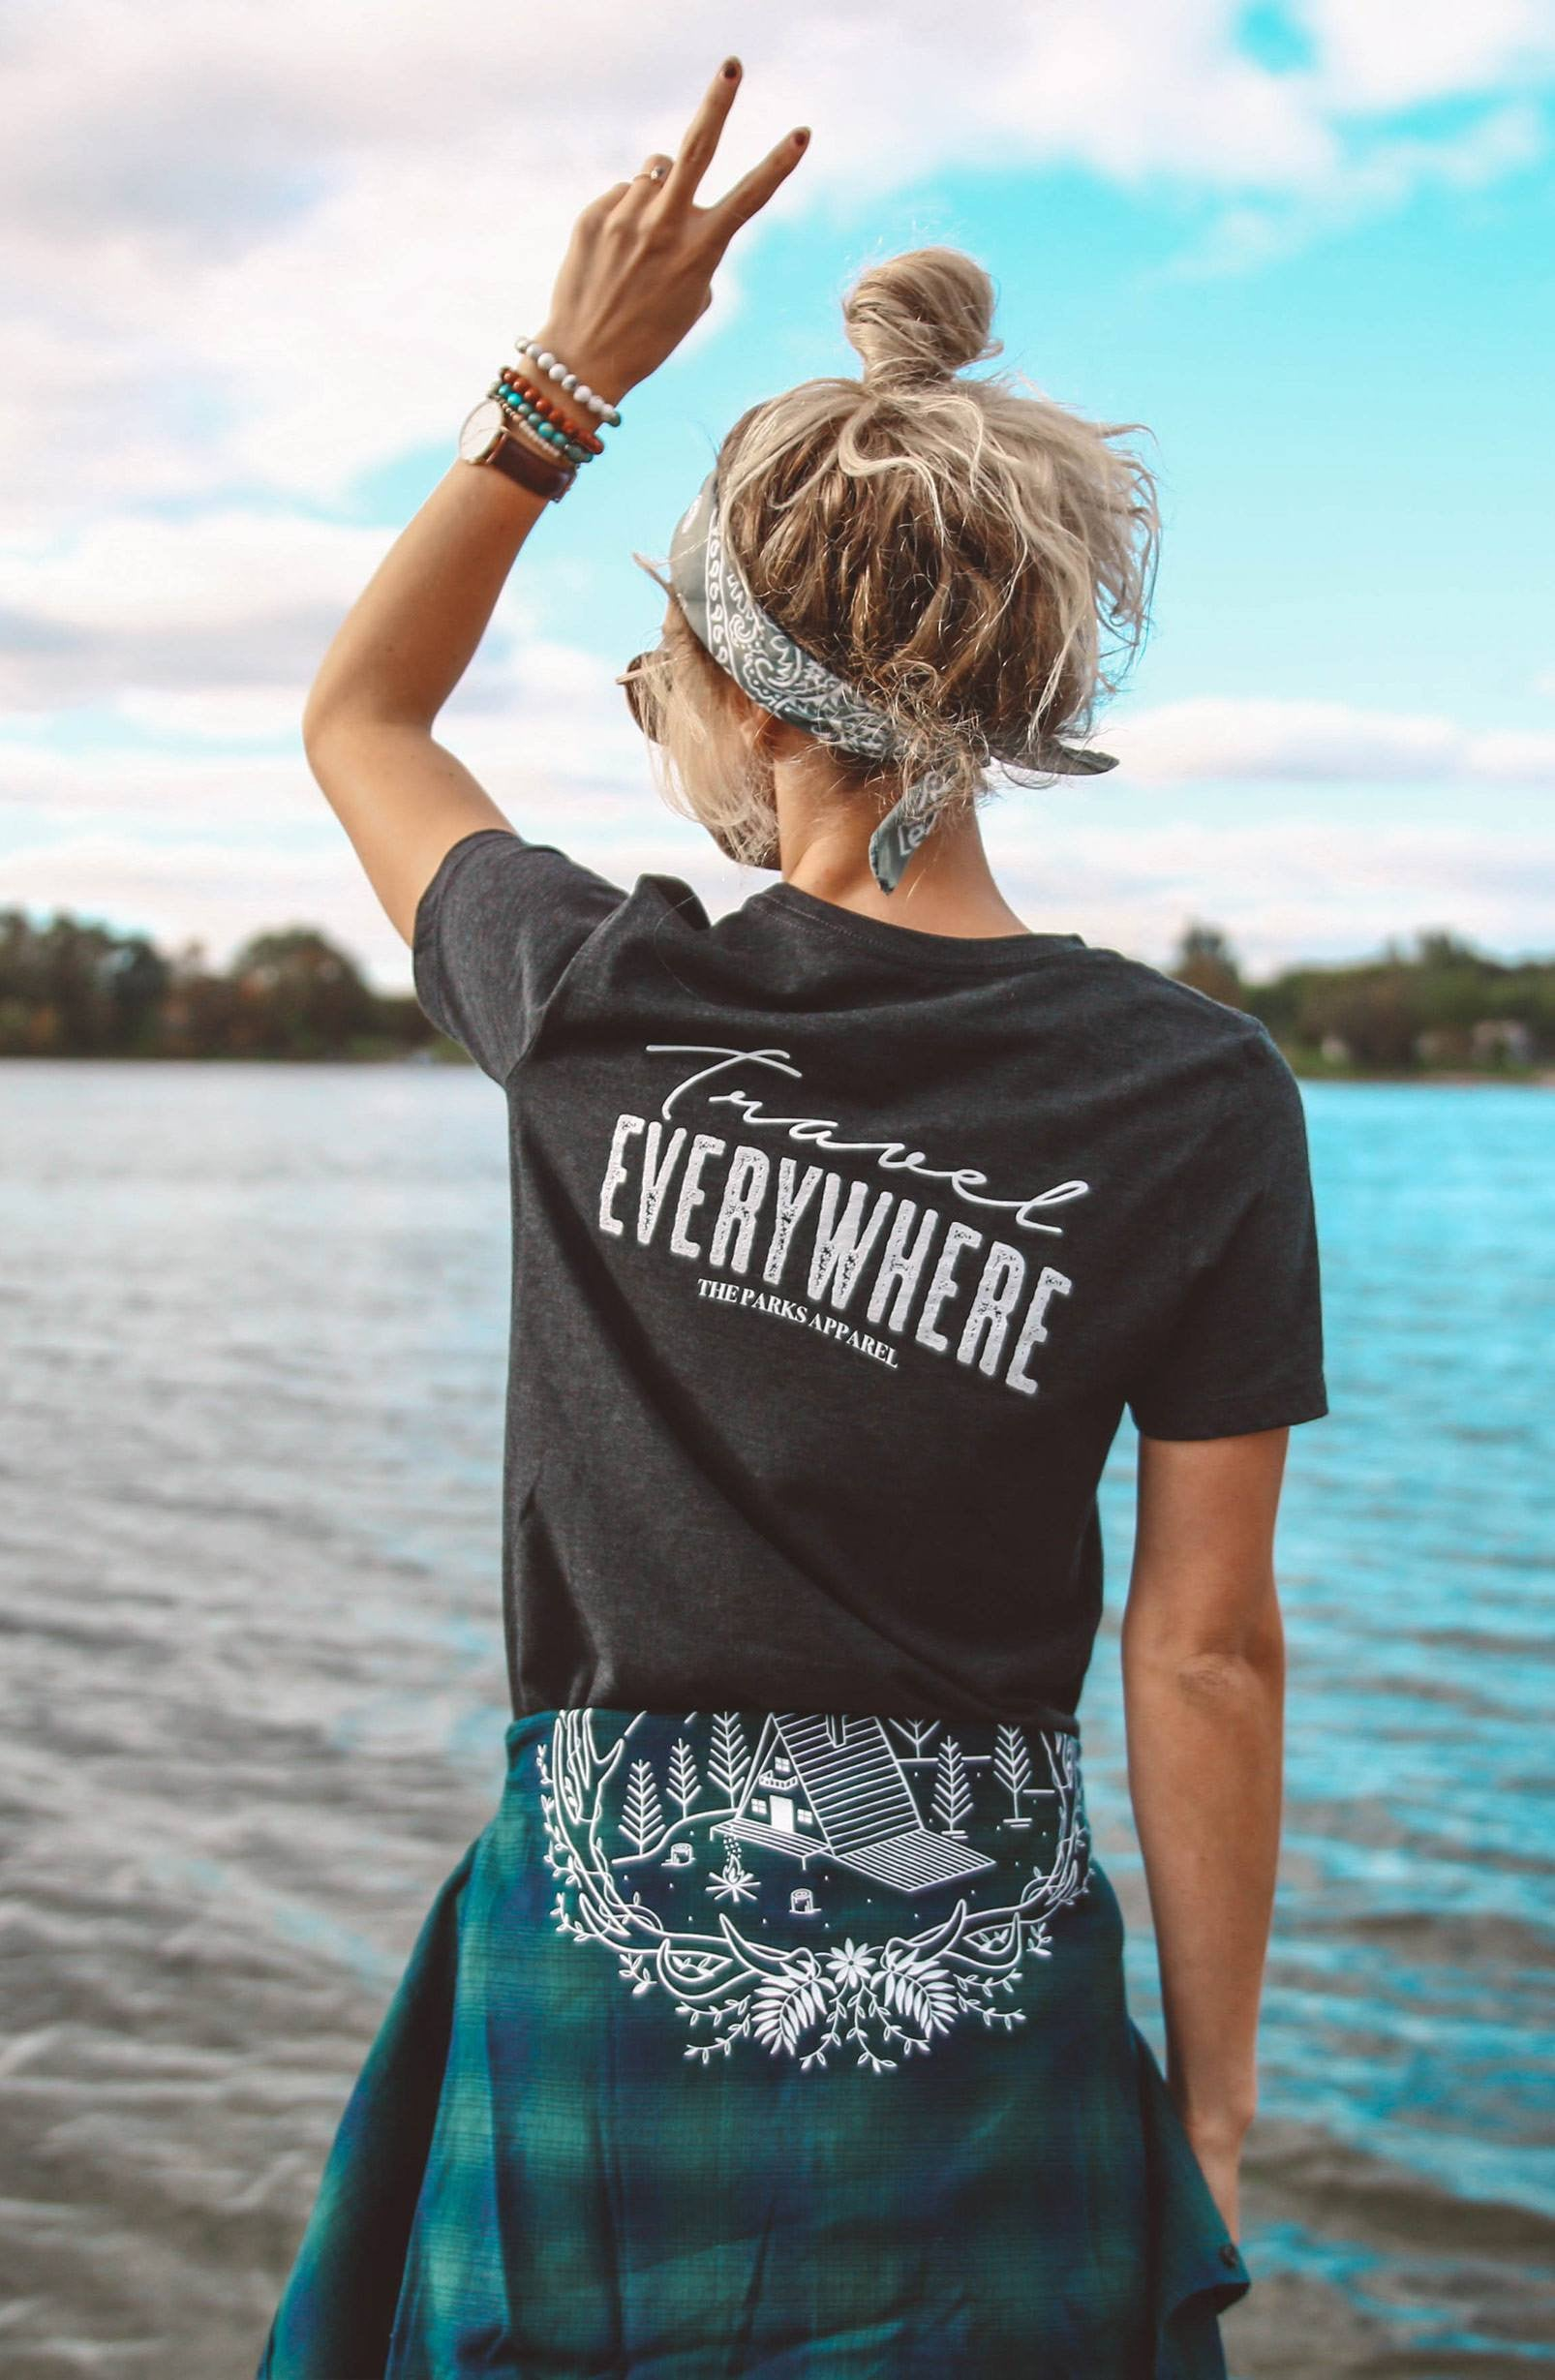 The Parks Travel Everywhere Women's Tee